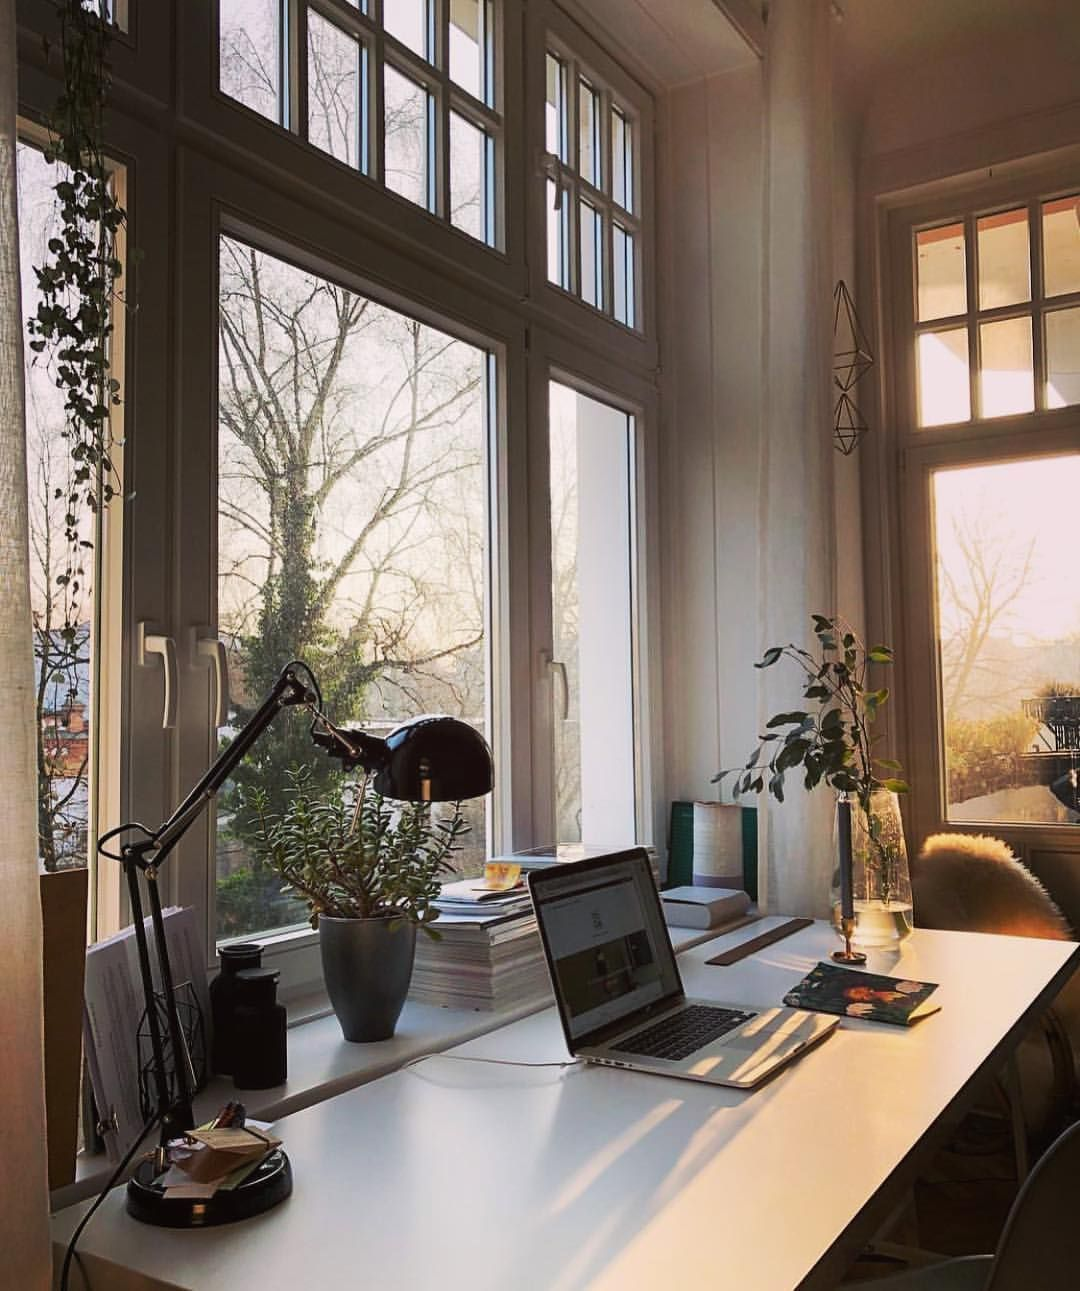 Home office design ideas whether you have  dedicated room or  re hoping to create an work hobby area in your living also most stylish space and will inspire rh pinterest